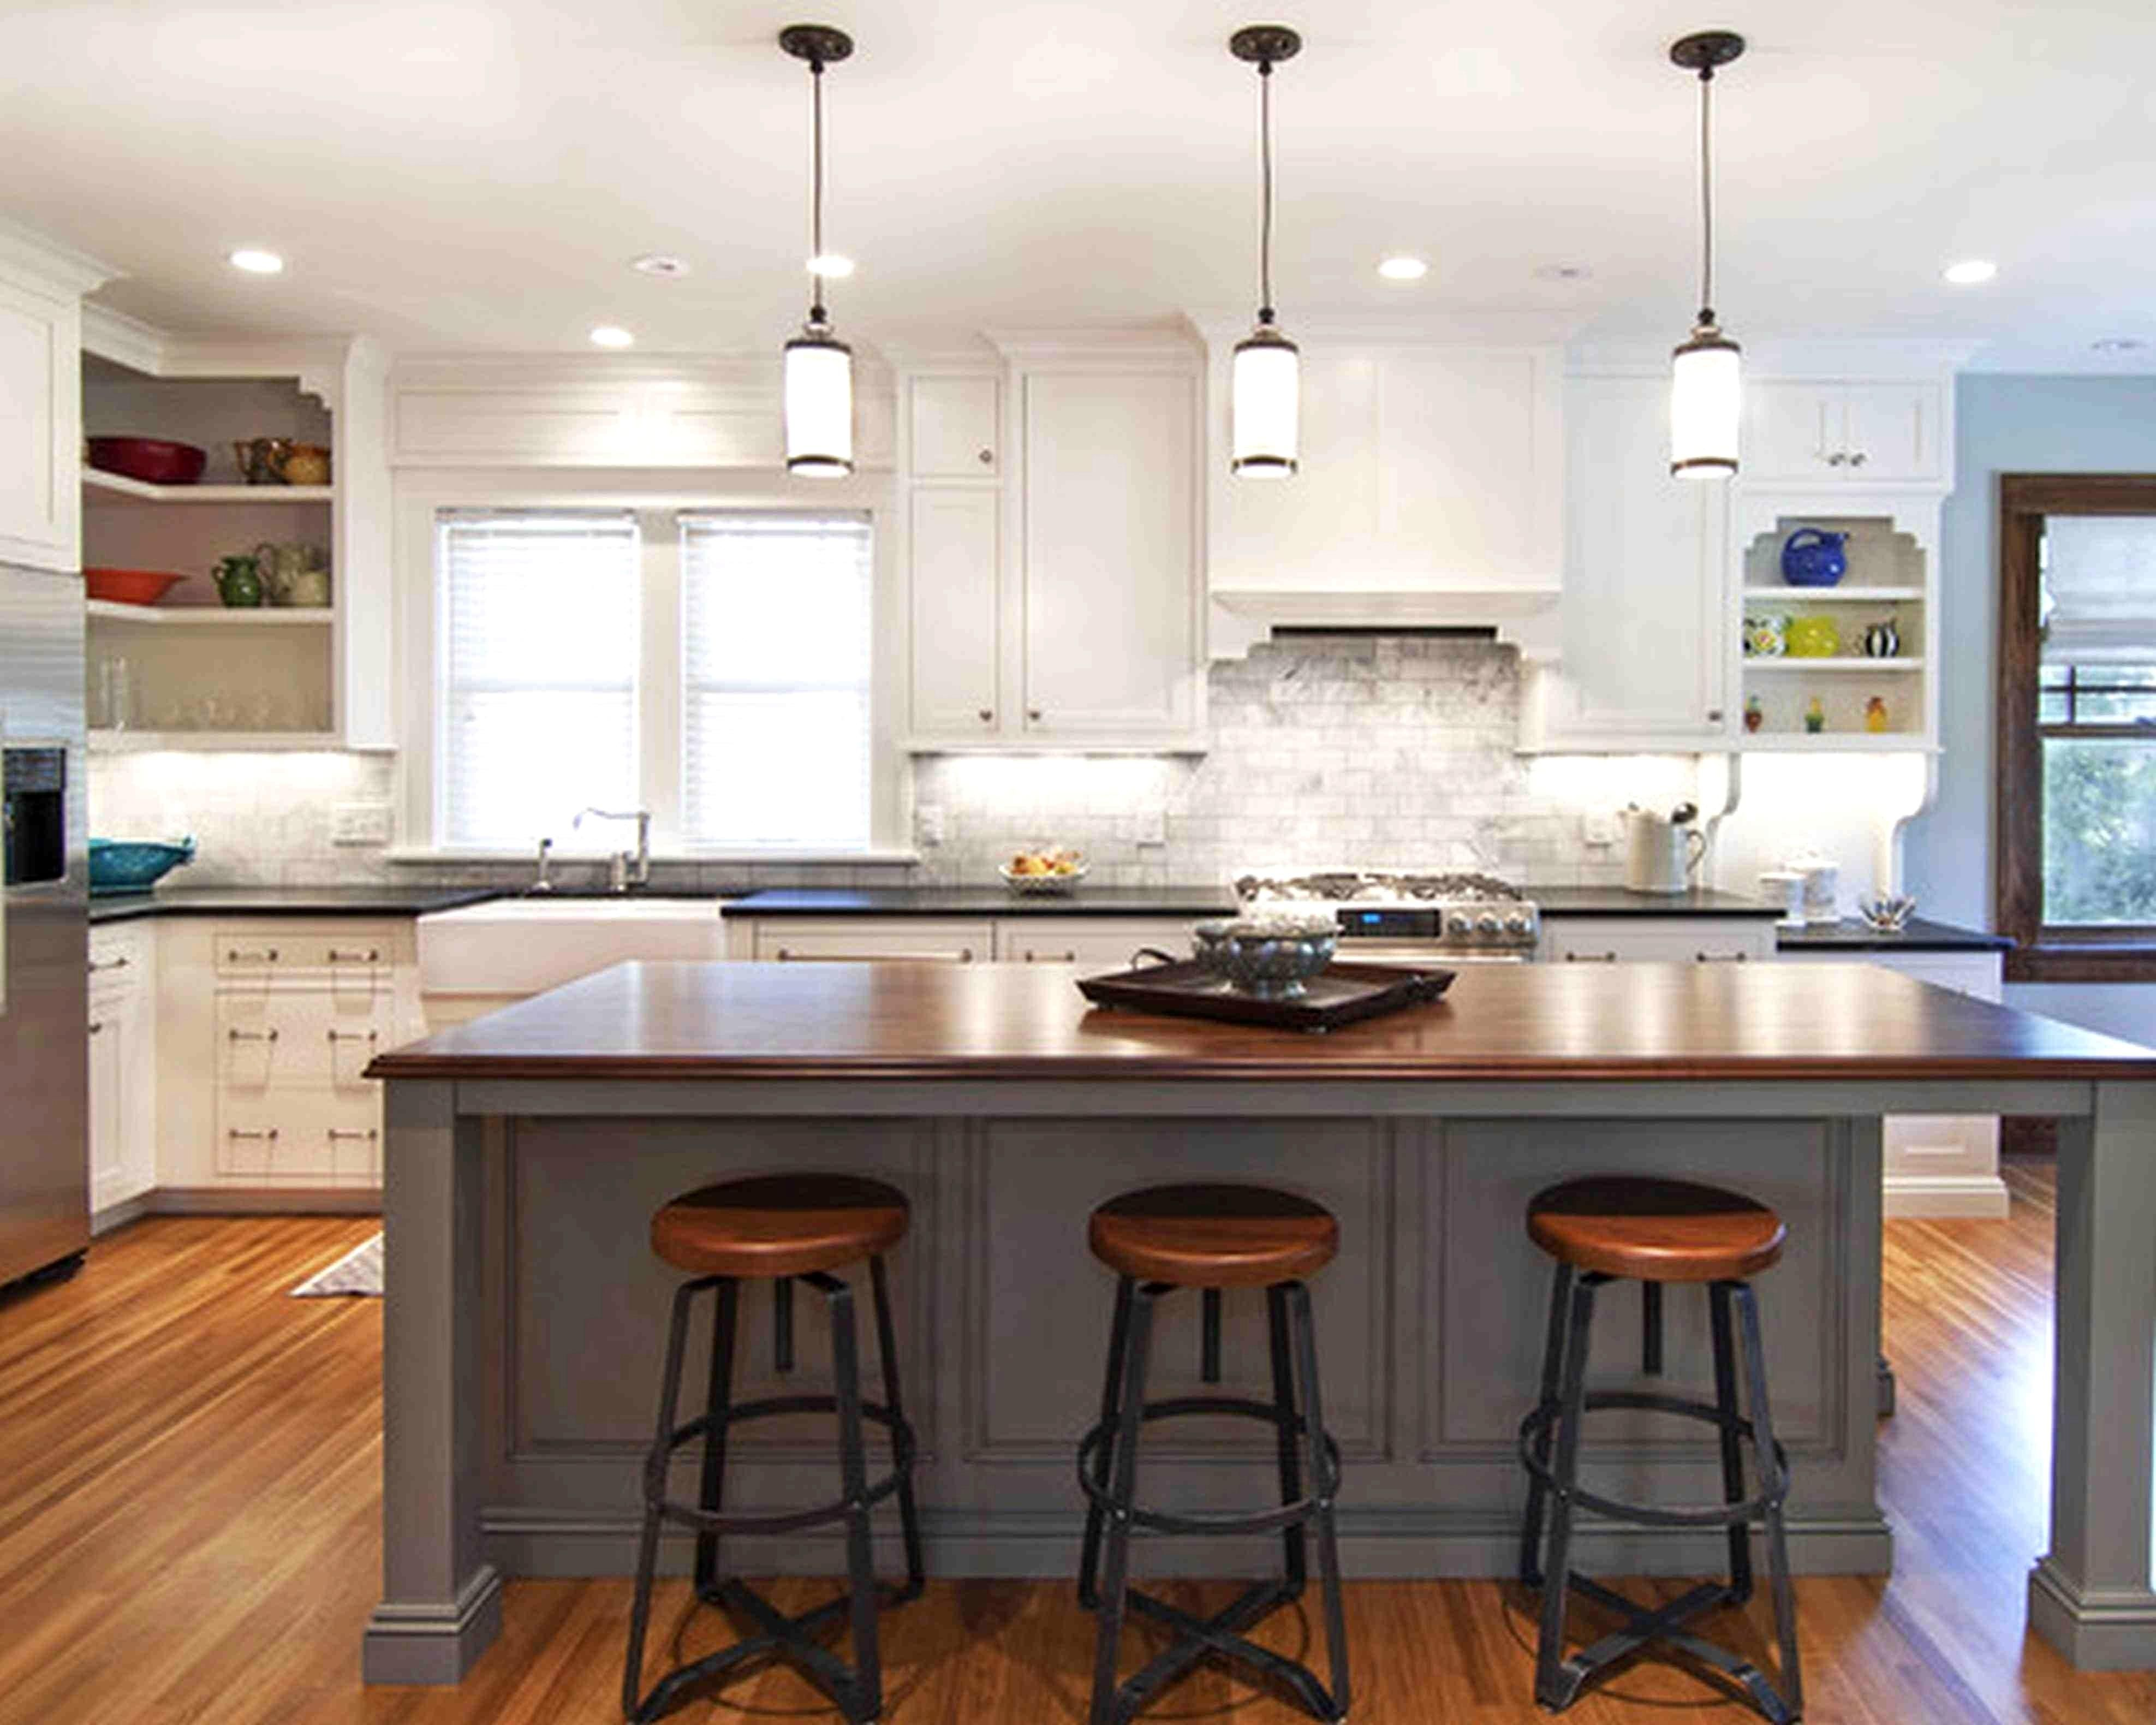 Single Pendant Lights For Kitchen Island Diy kitchen